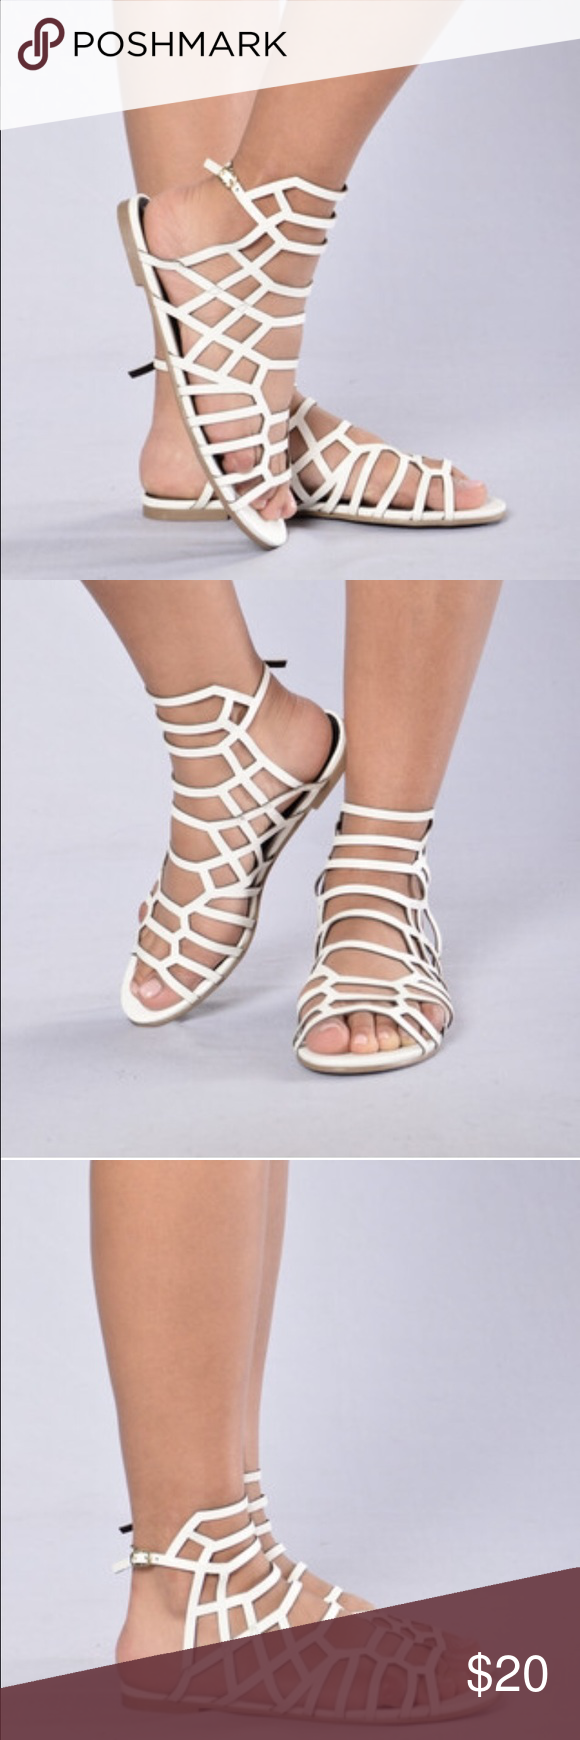 White Strappy Sandals Never worn only tried on. Hook around ankle size 9. Fashion Nova Shoes Sandals